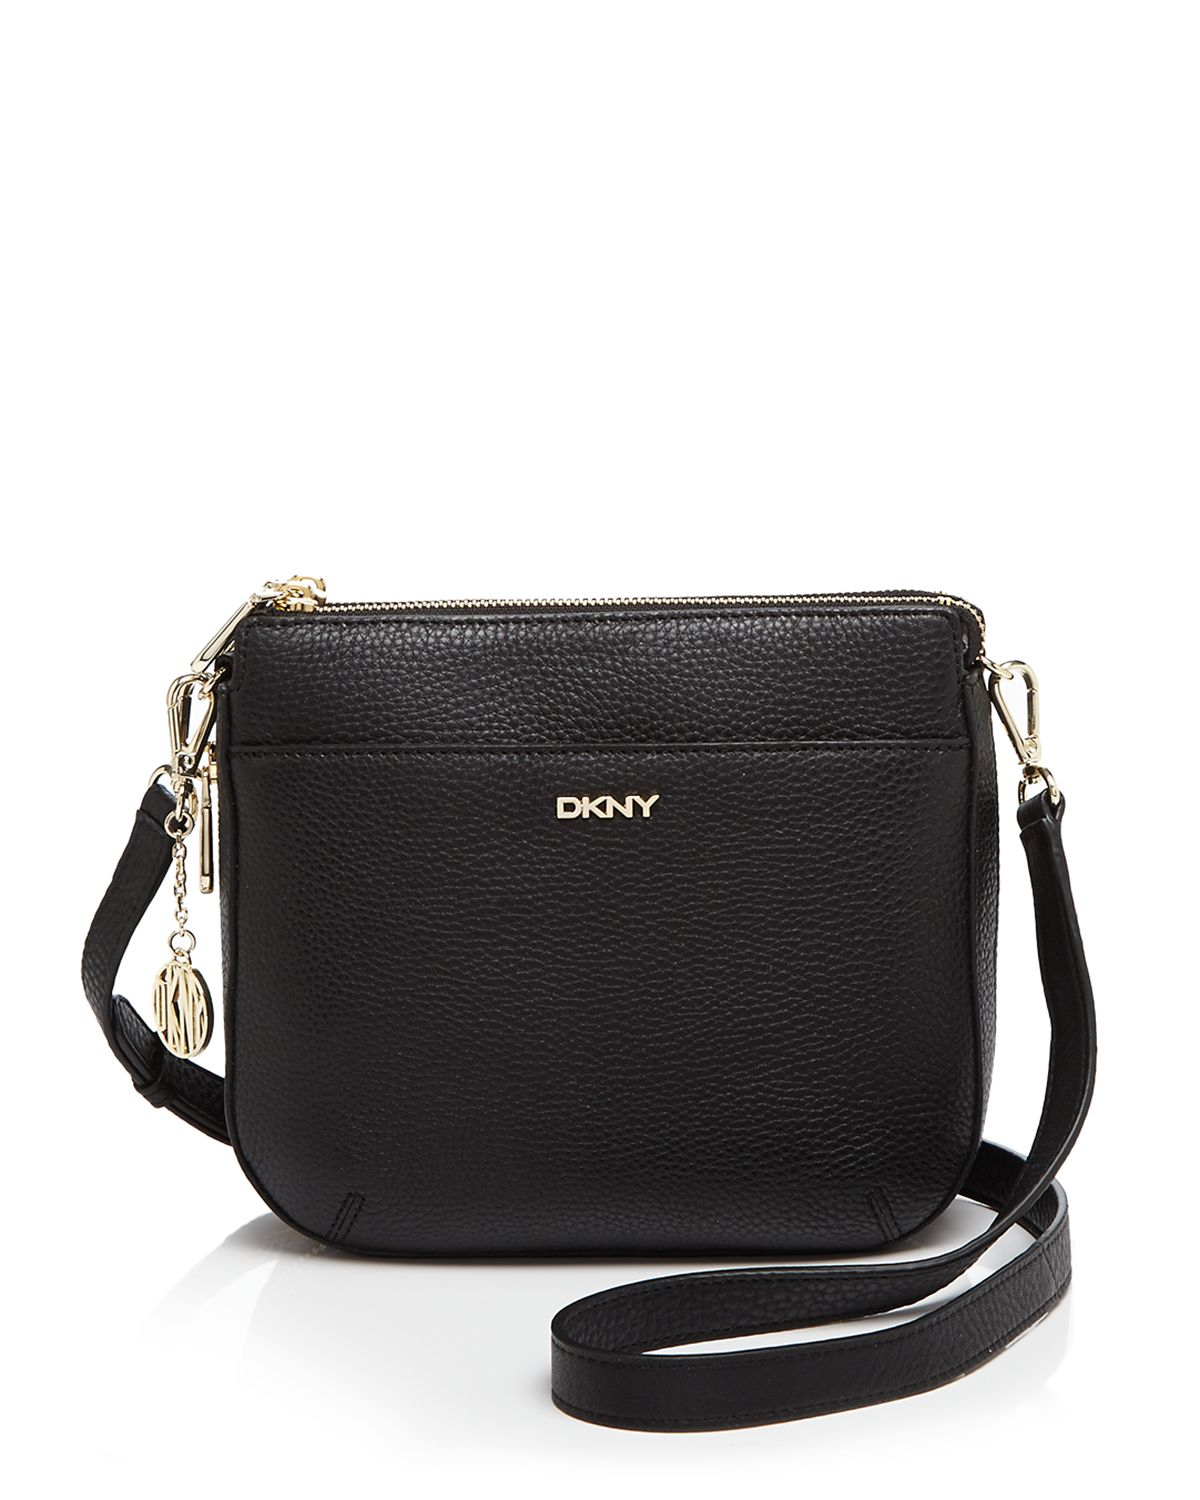 Cross Body Bags - Tilly Circa Crossbody Bag Black - black - Cross Body Bags for ladies DKNY P5BGquWlqb